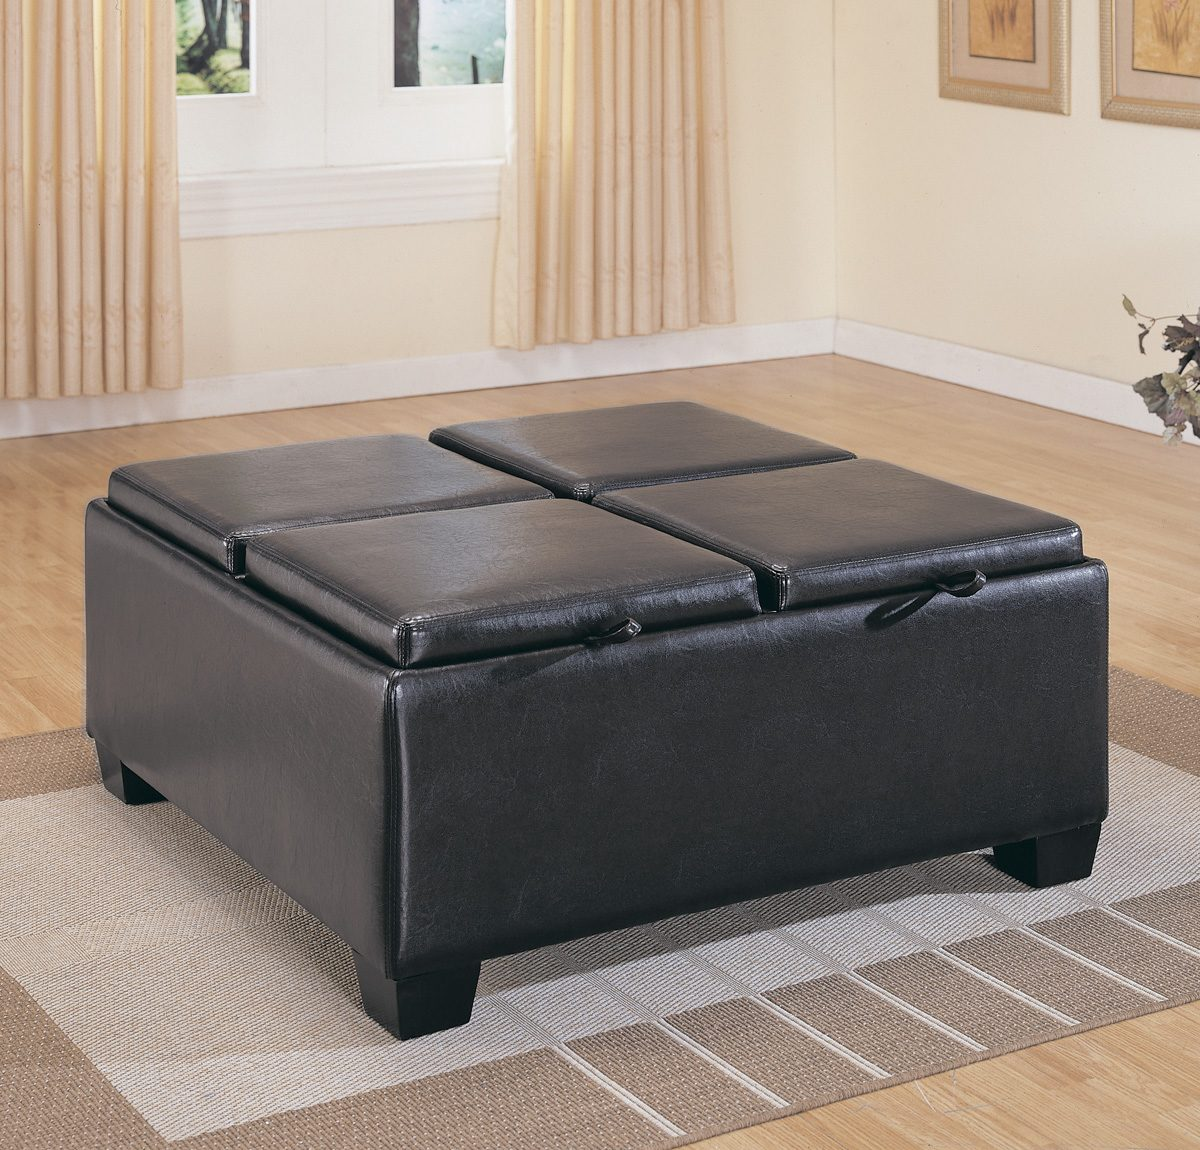 Tufted Round Ottoman Coffee Table | Large Round Leather Ottoman Coffee Table | Extra Large Ottoman